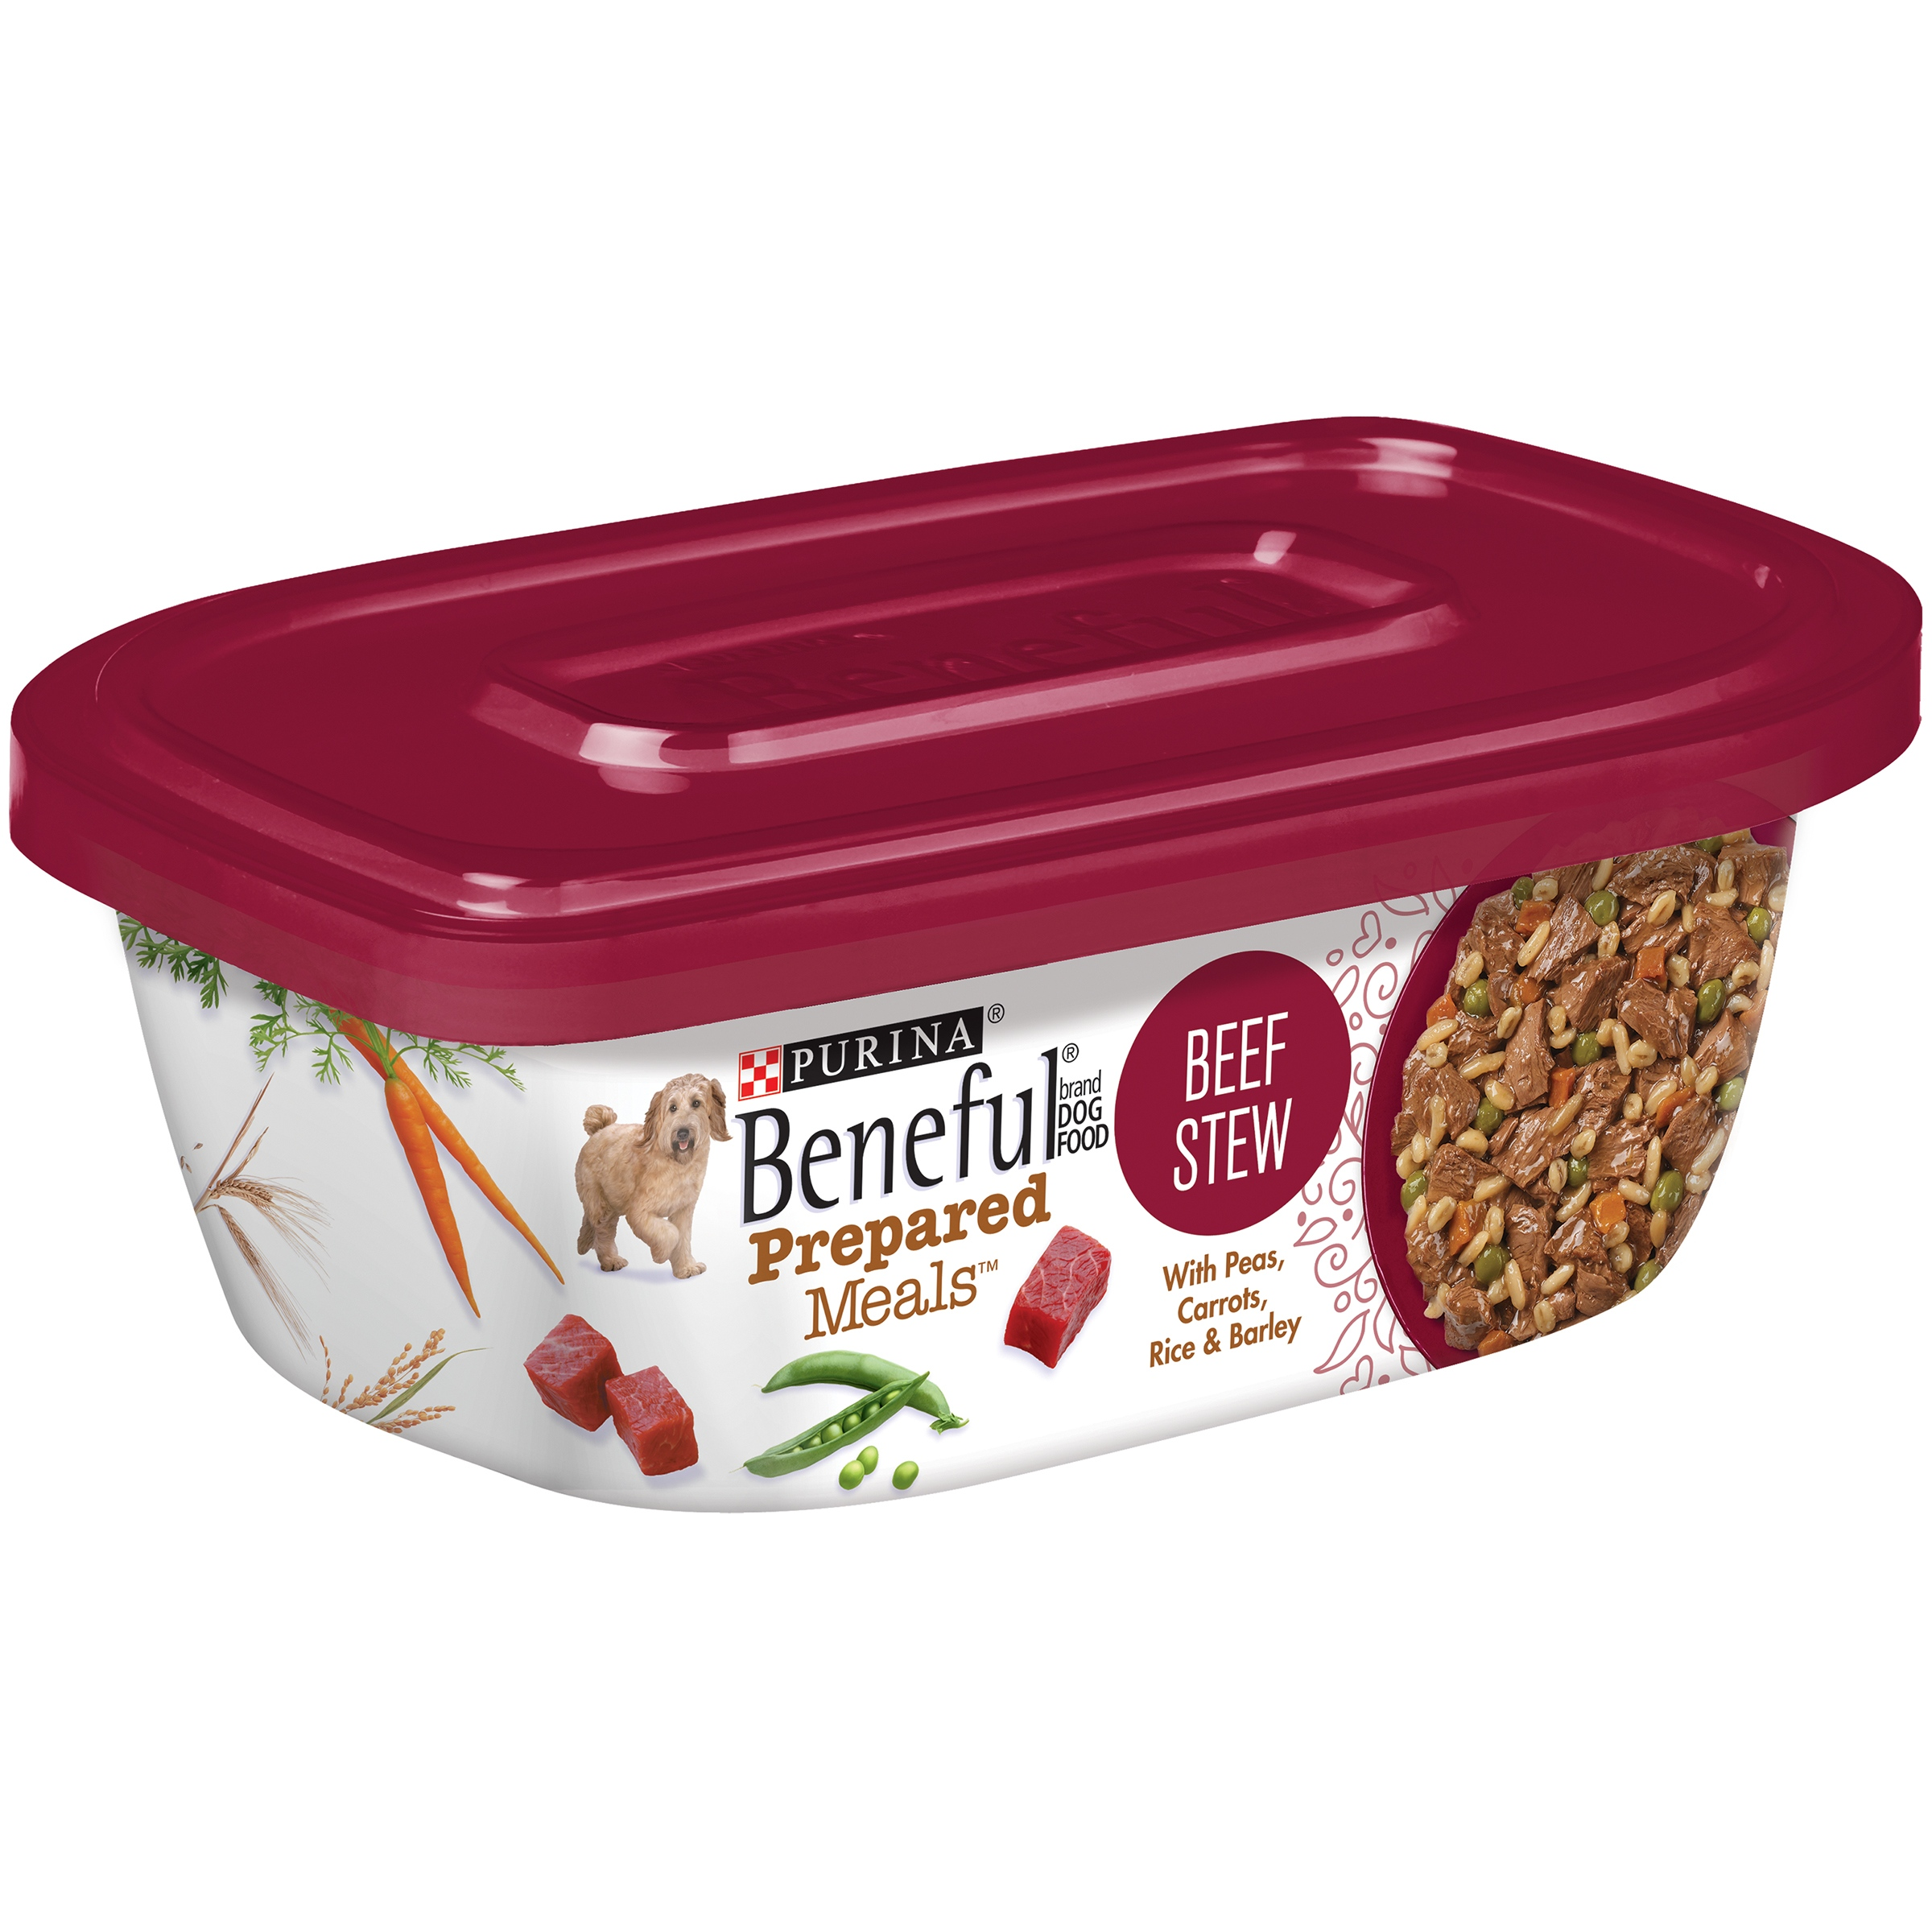 Purina Beneful Prepared Meals Beef Stew Dog Food 10 oz. Plastic Tub